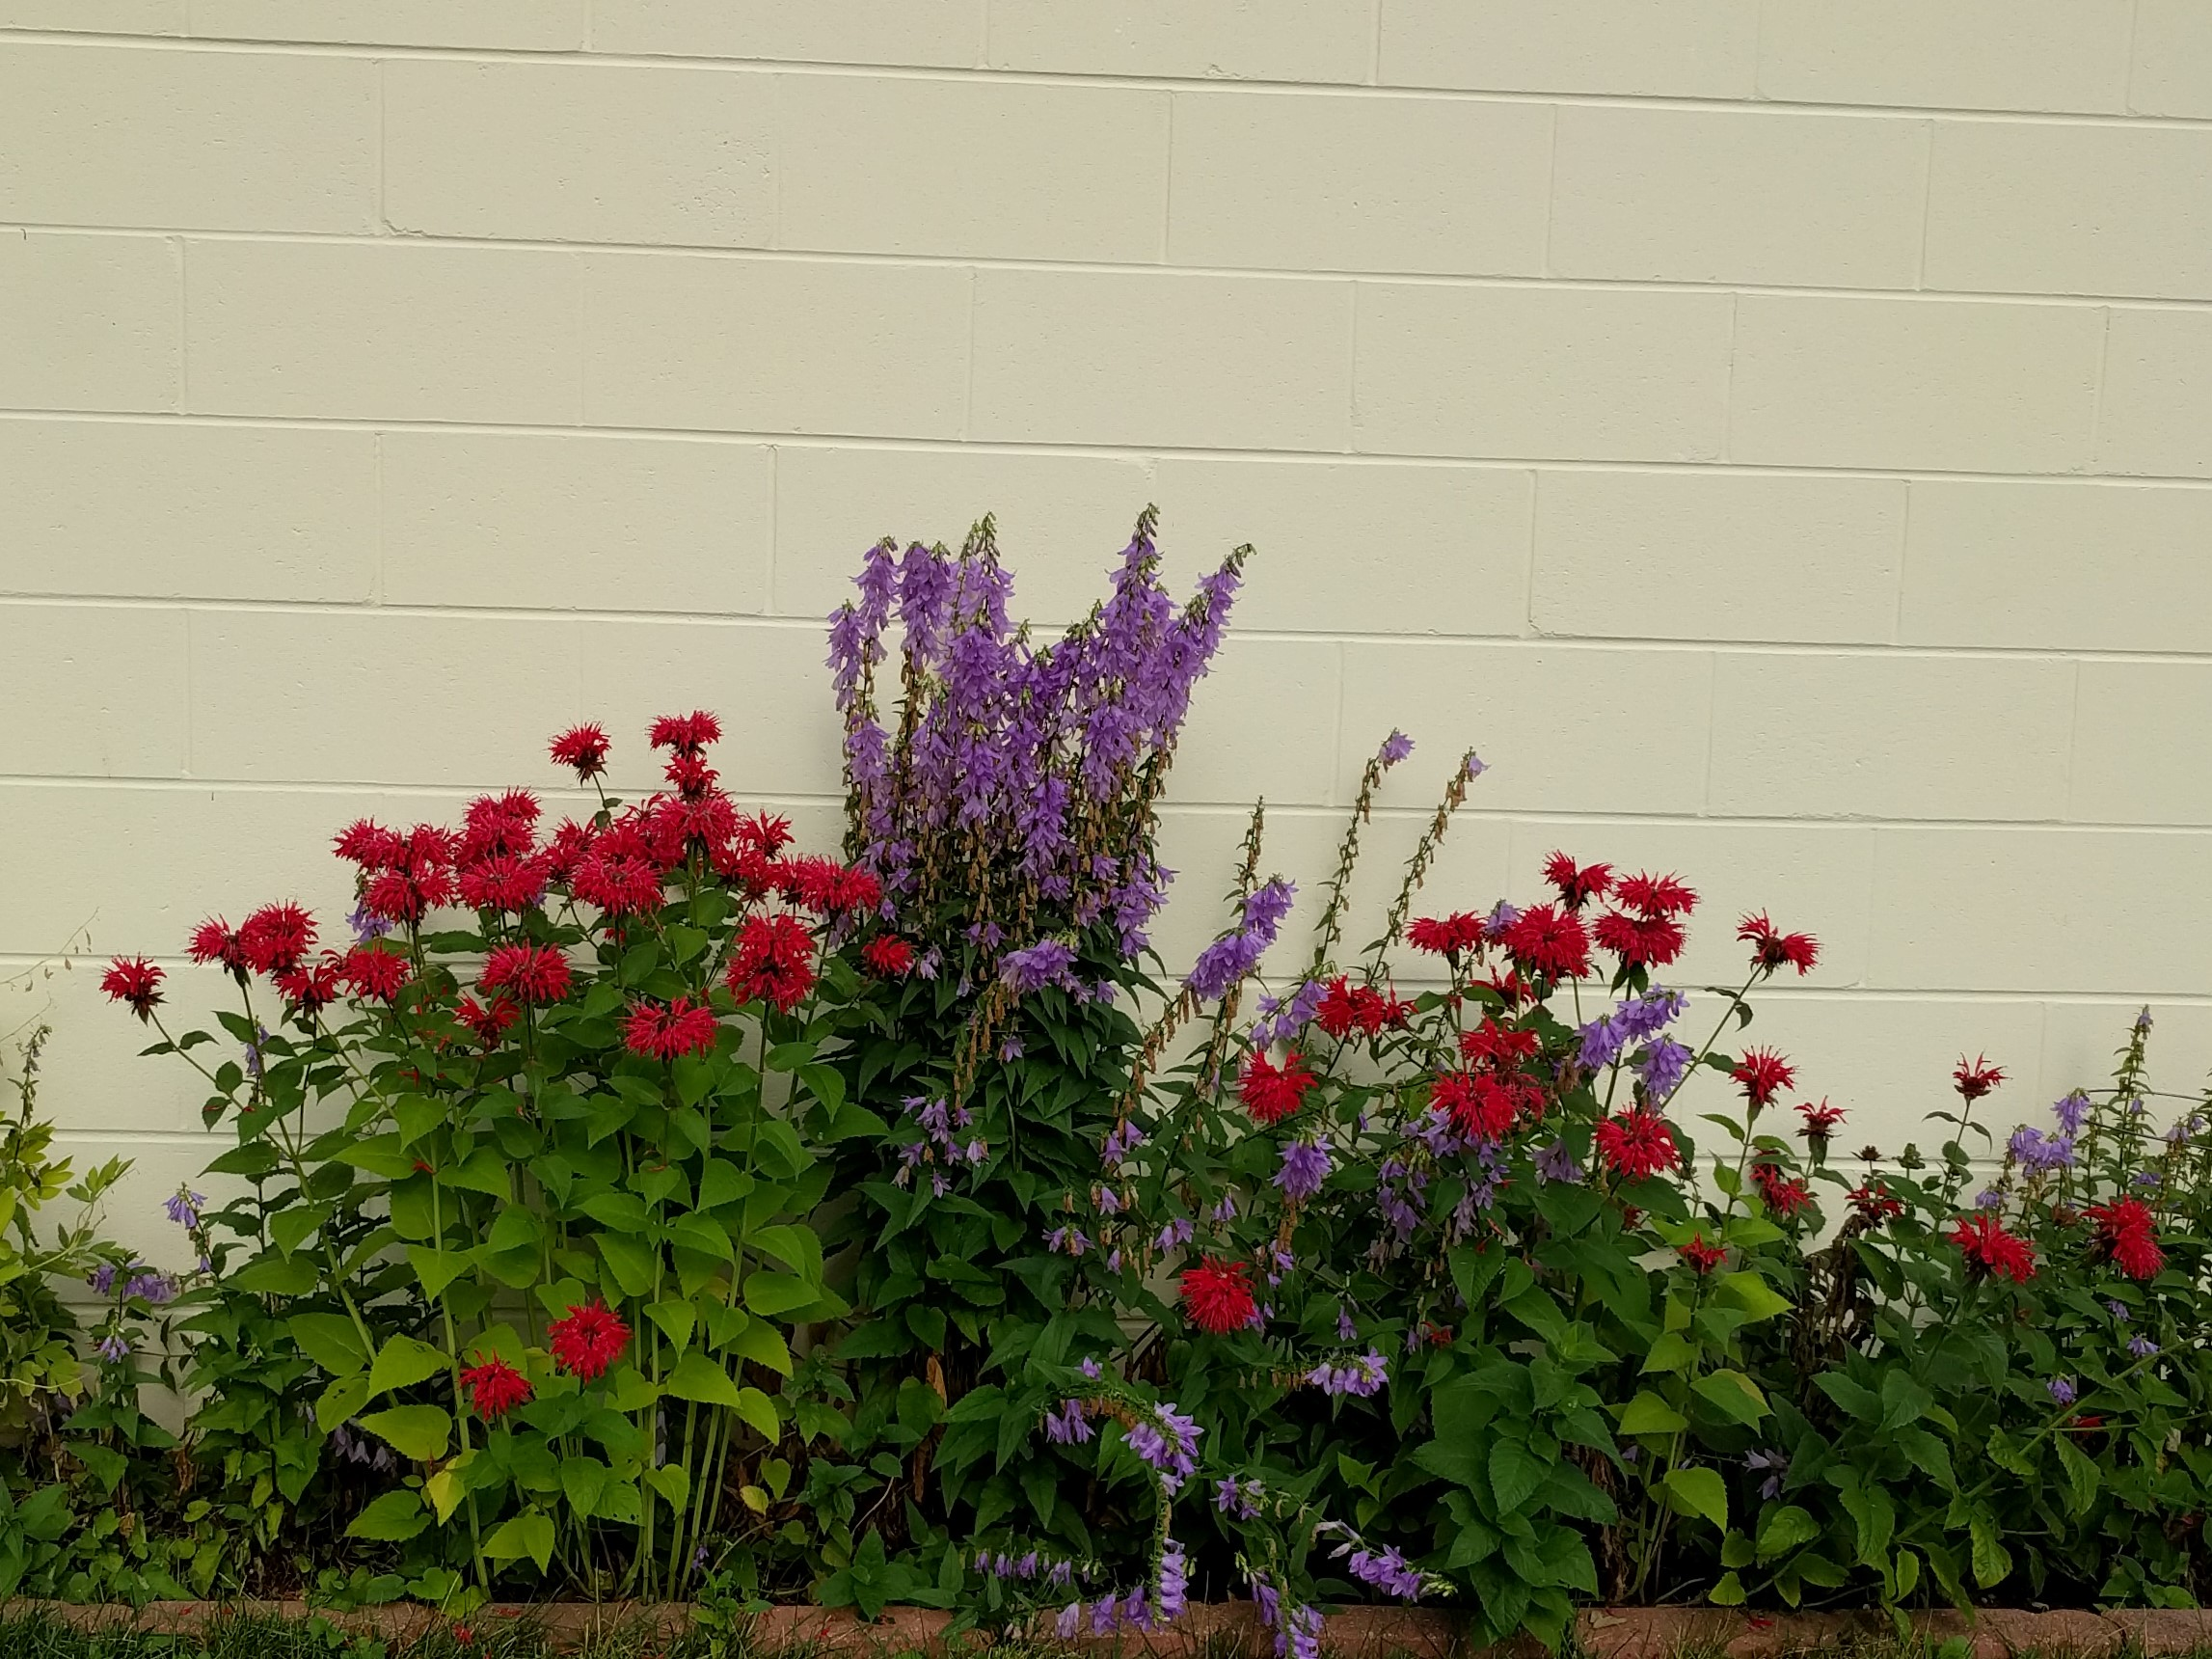 Year 3: Red bee balm and purple harebells in July. The harebells are restrained with a wire tomato cage to keep them from getting wild and tipping into the lawn.